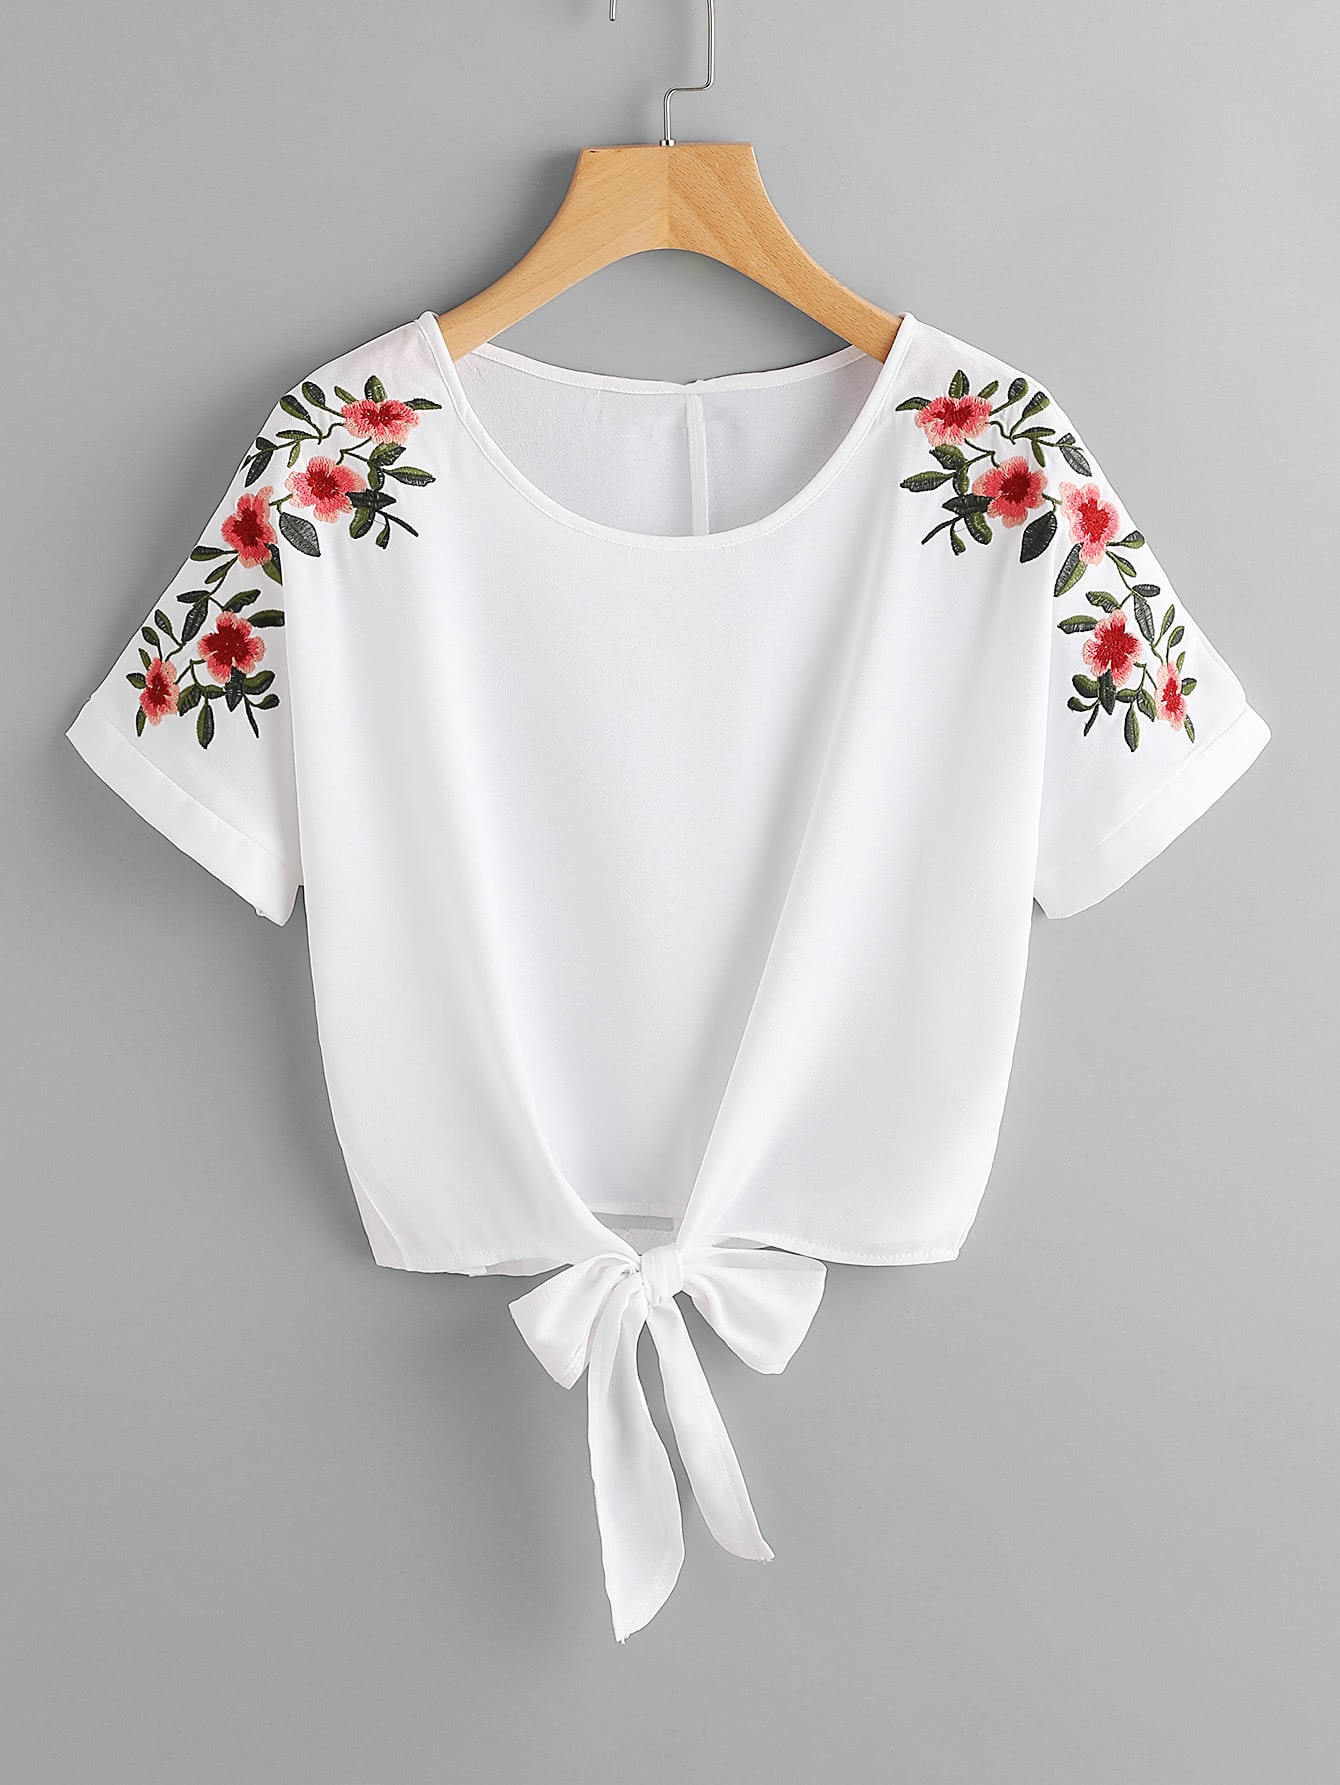 Flower Embroidery Knot Front Top embroidery applique knot back fitted